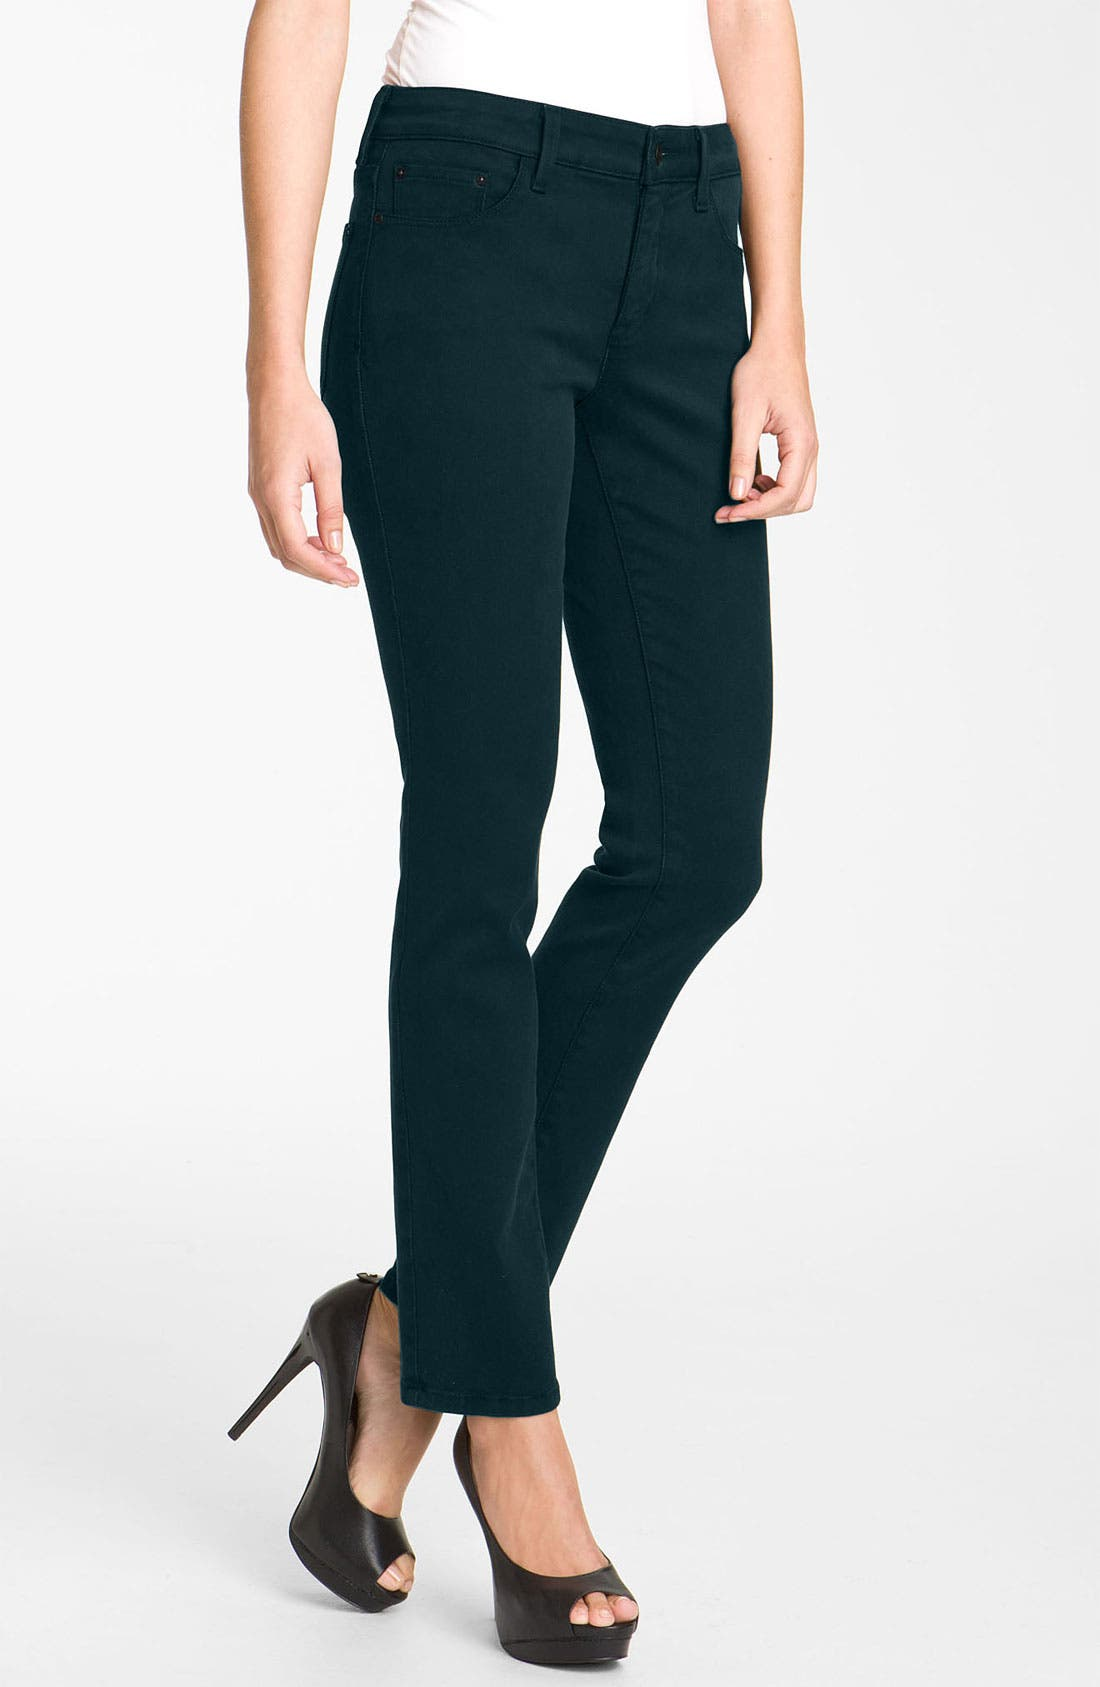 Alternate Image 1 Selected - NYDJ 'Jade' Denim Leggings